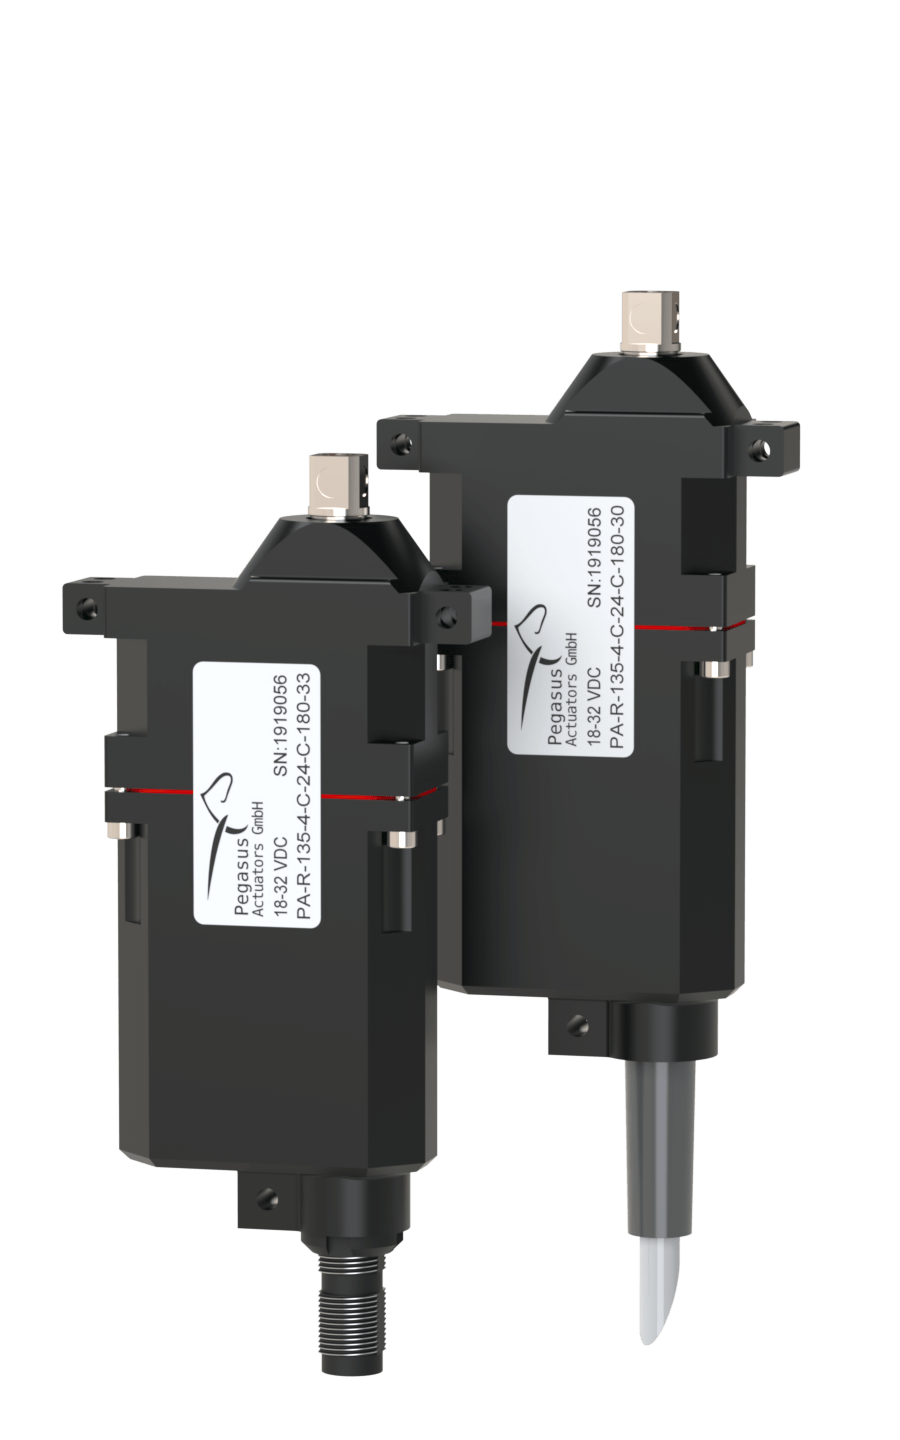 PA-R-135-4 Industrial Actuators